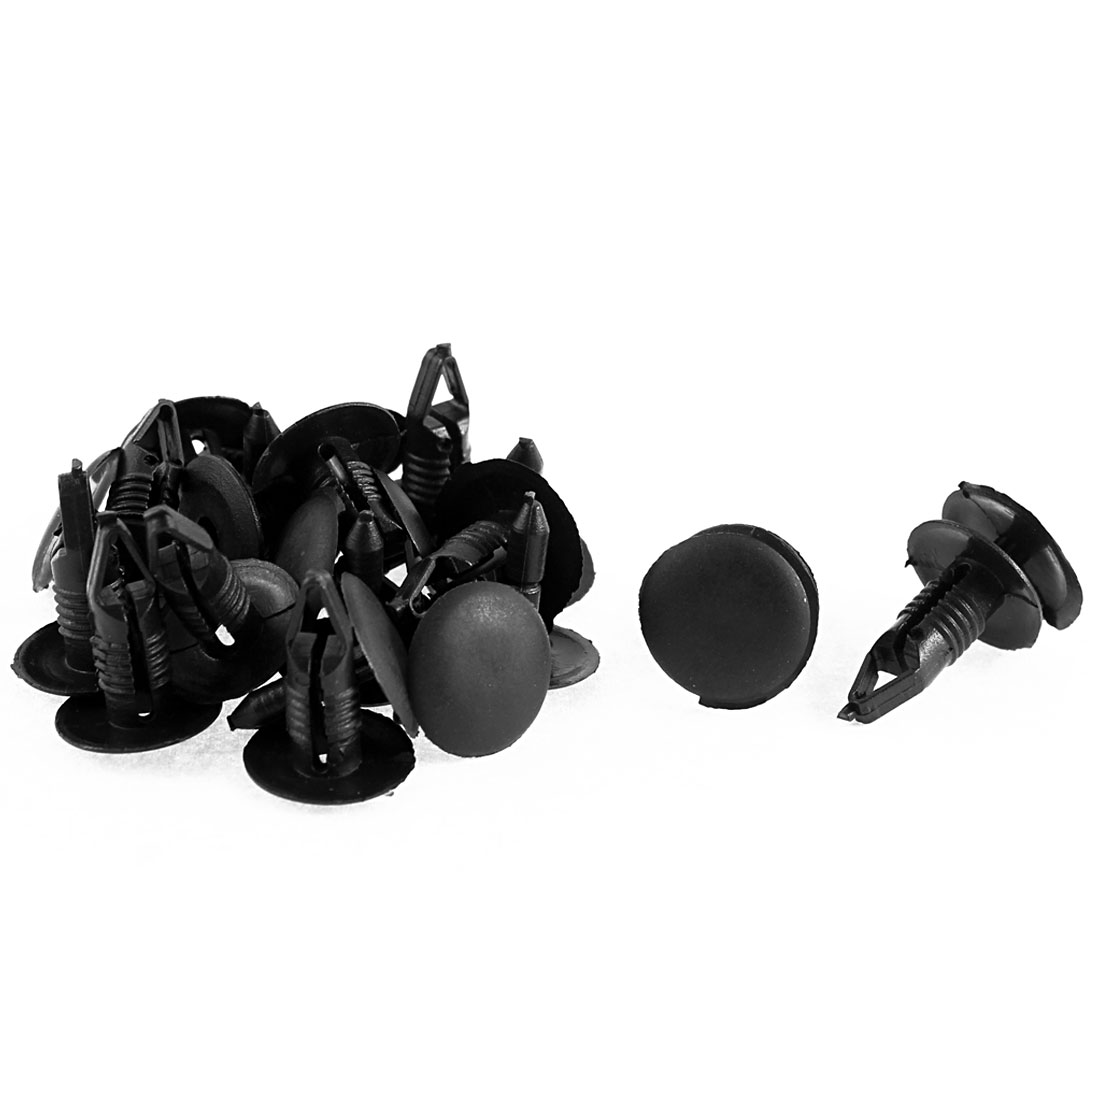 12Pcs Black Plastic Push-Type Auto Trim Clips 7mm Hole for Ford